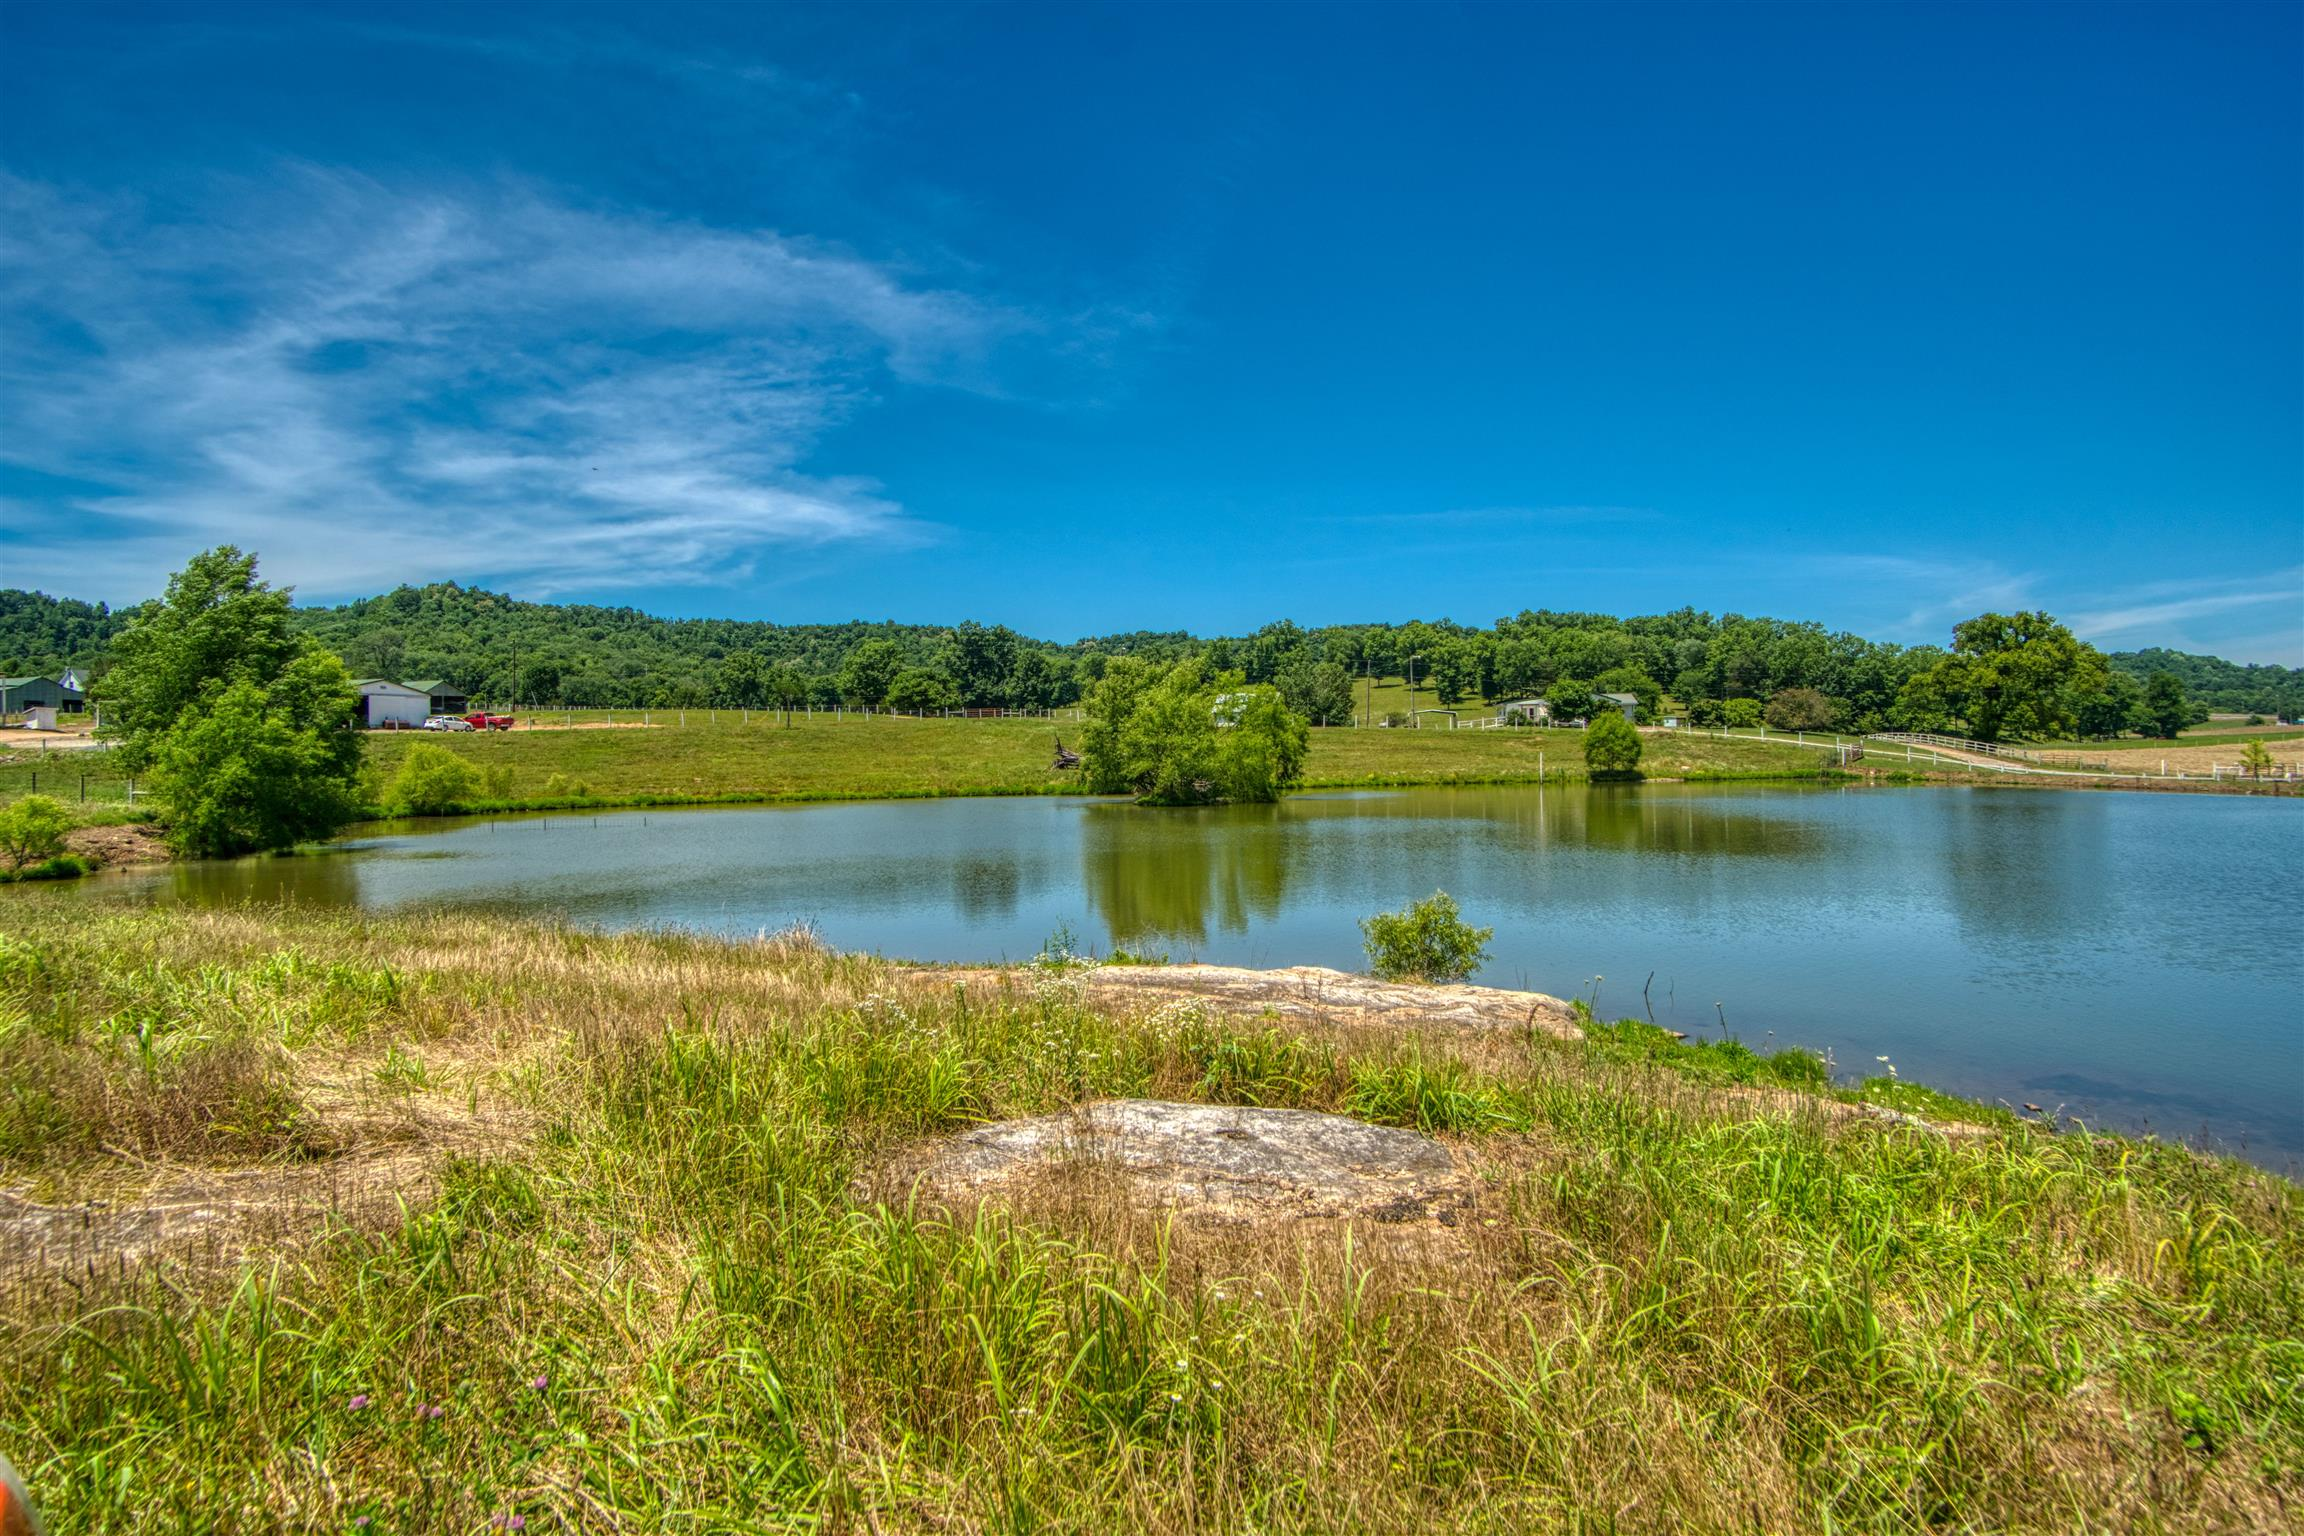 0 Parker Valley Ln (26.45 A), Frankewing, TN 38459 - Frankewing, TN real estate listing